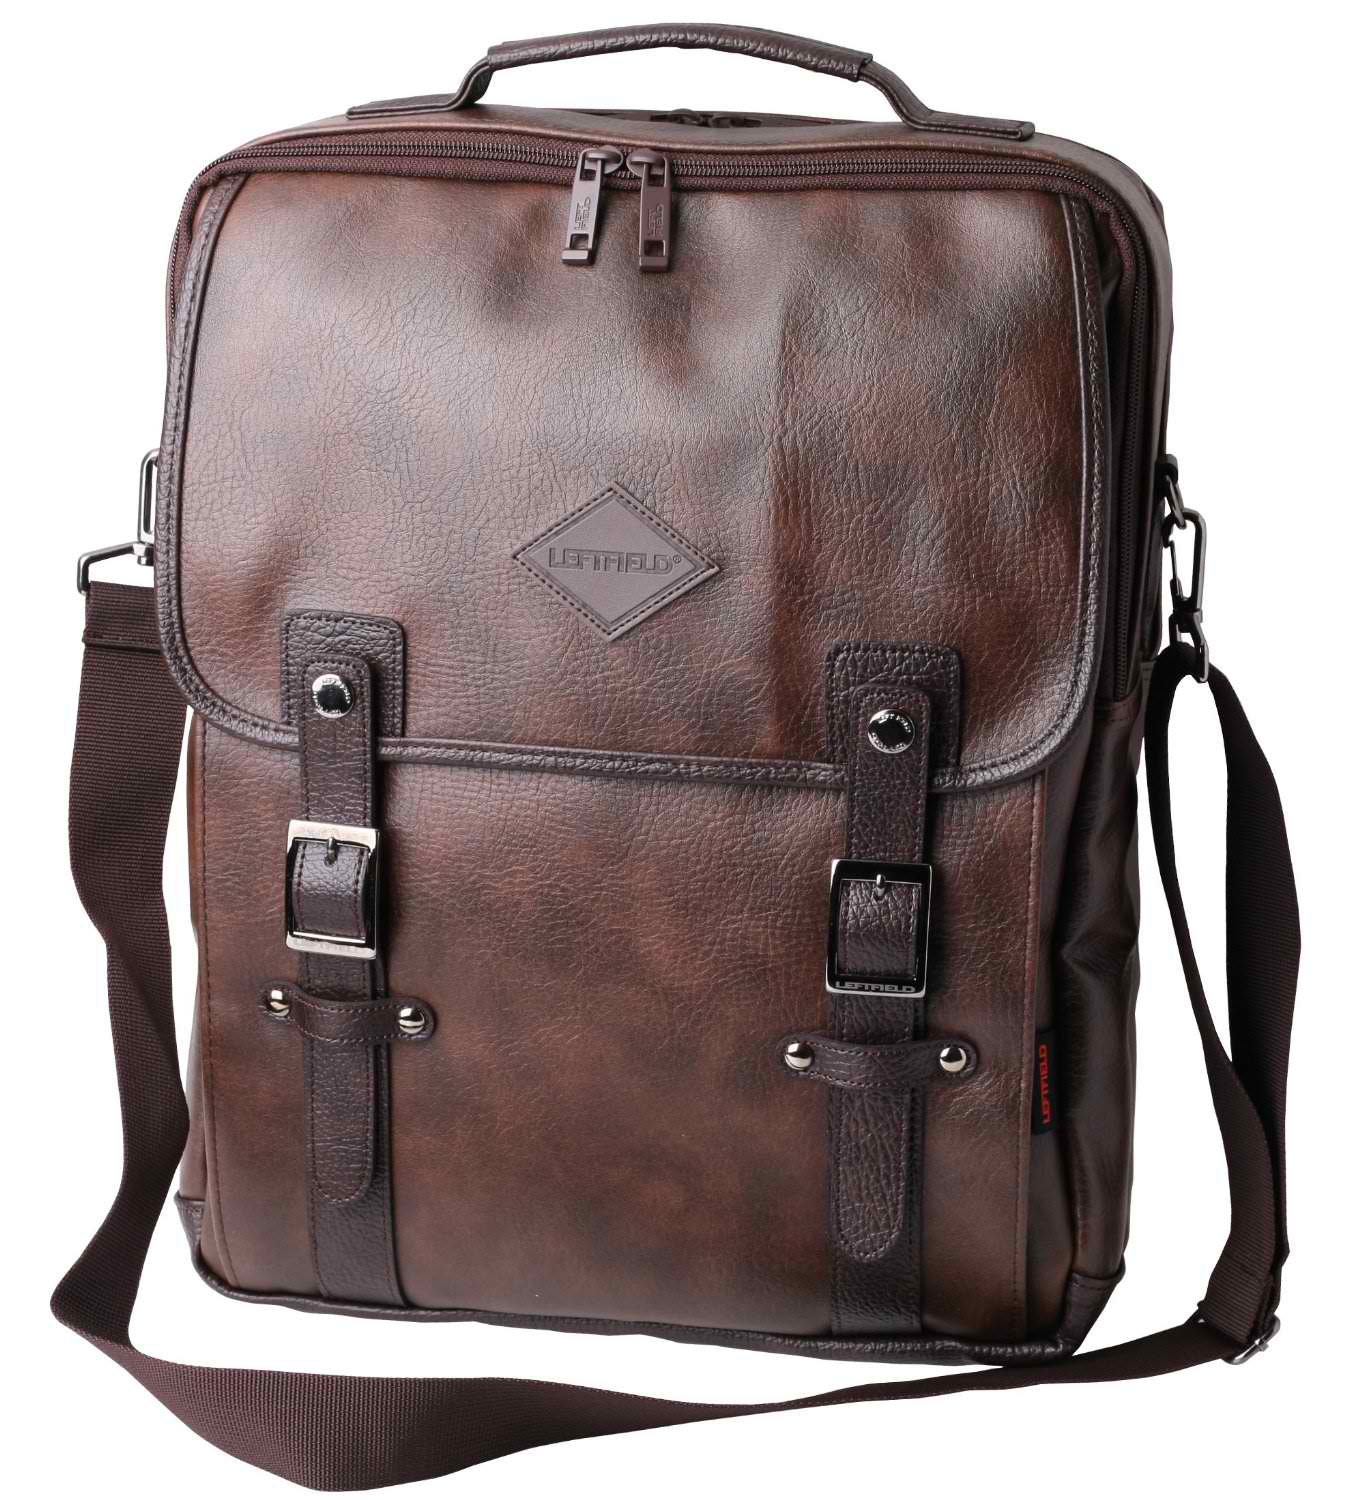 Leather Tote Backpack huhTYPJW